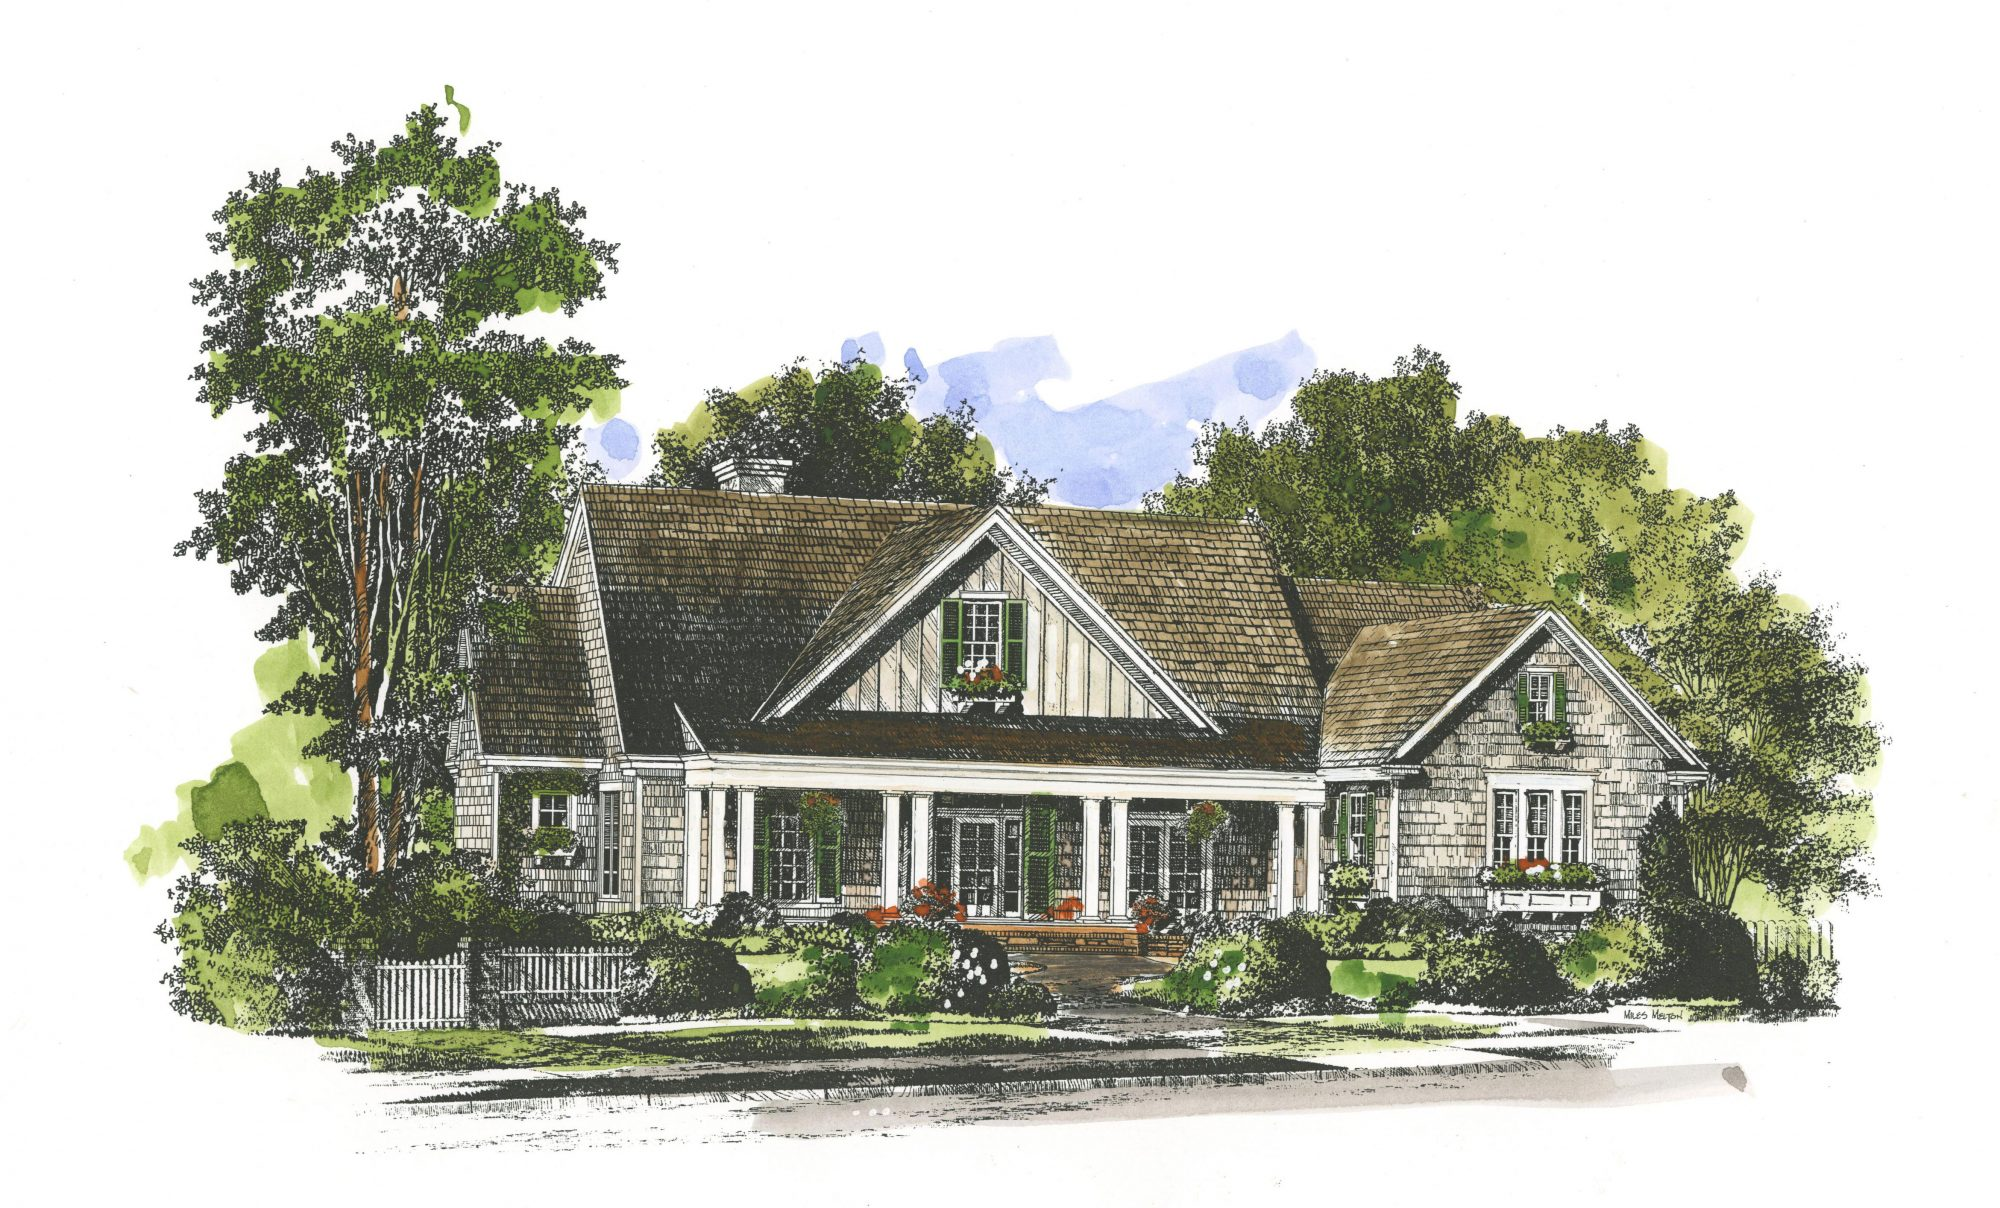 Reasons we love the new oxford house plan southern living for House plans with guest houses southern living